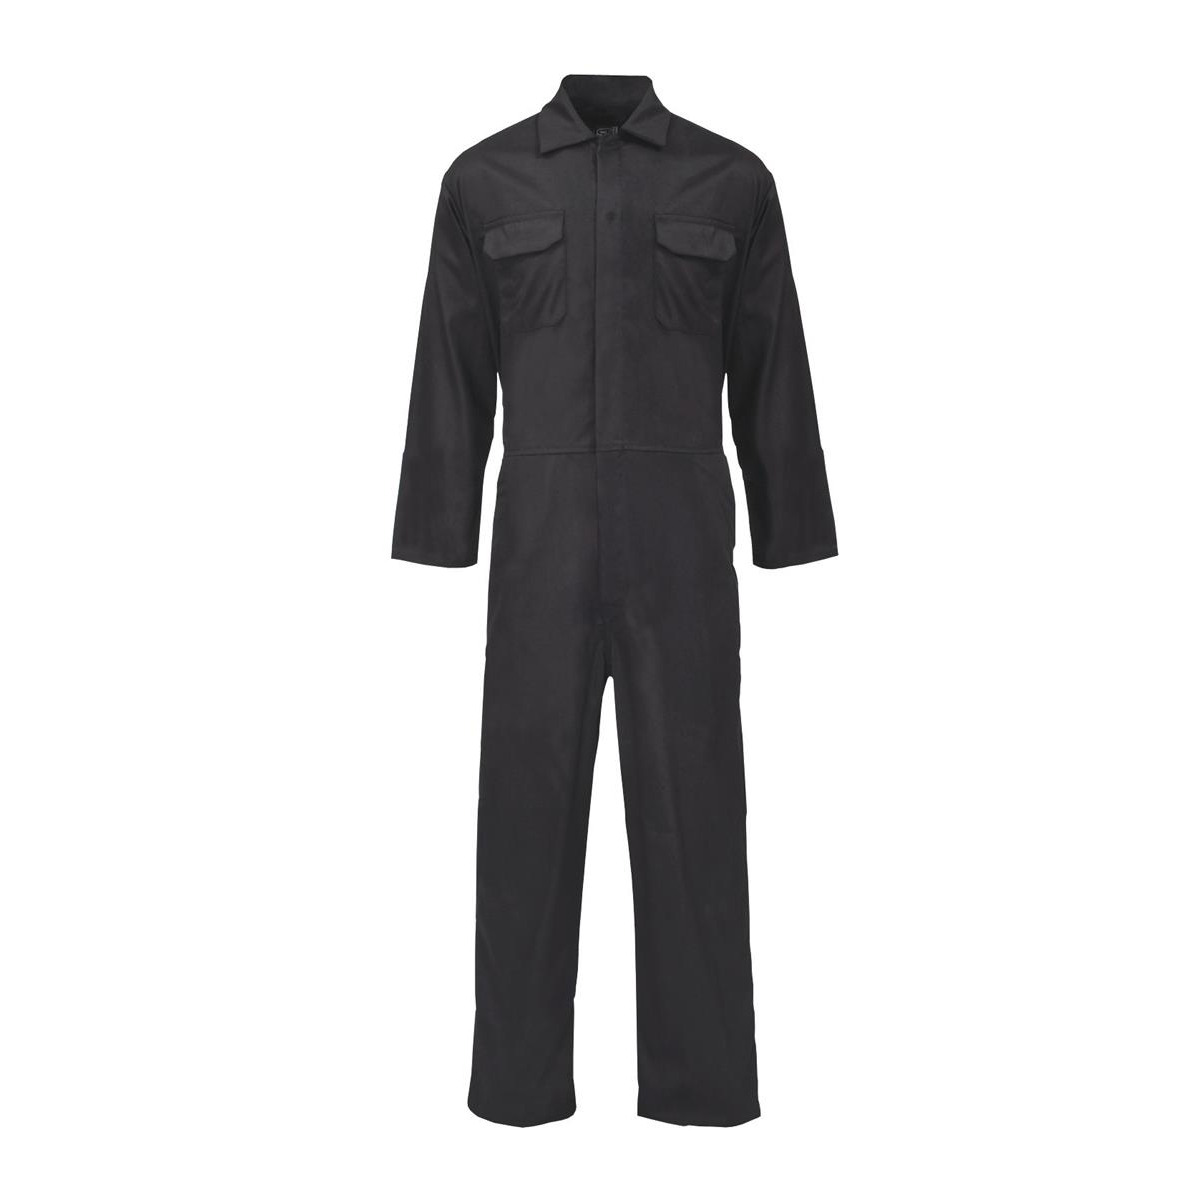 Coverall Basic with Popper Front Opening Polycotton Small Black Ref RPCBSBL36 *Approx 3 Day Leadtime*